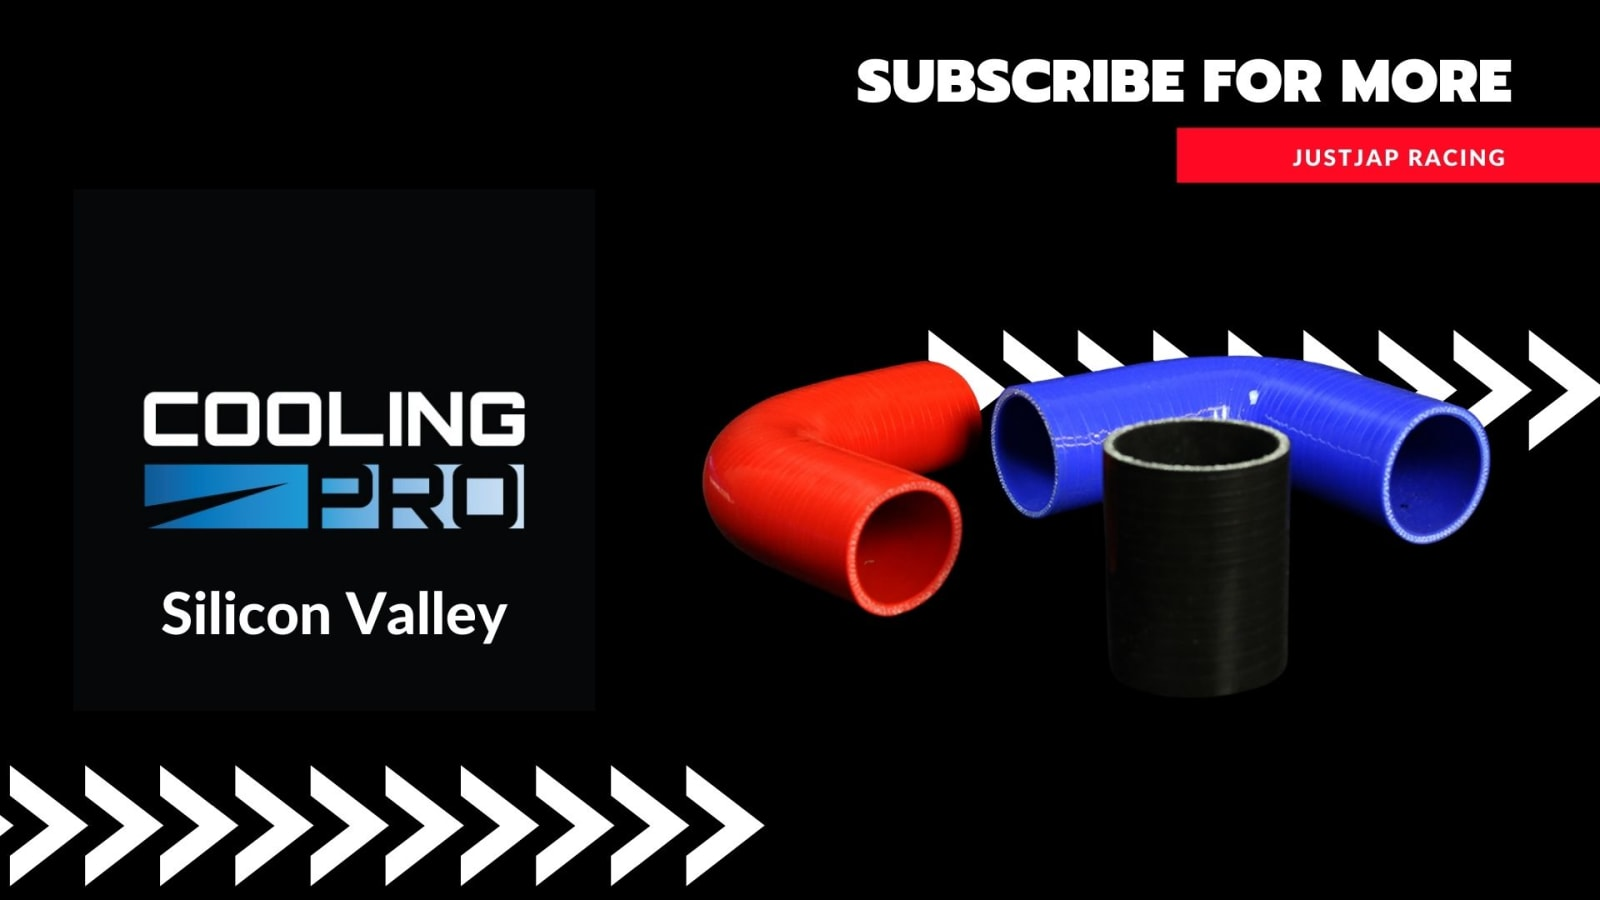 Cooling Pro Silicone 1.5 Inch / 38mm 135 Degree Bend Hose